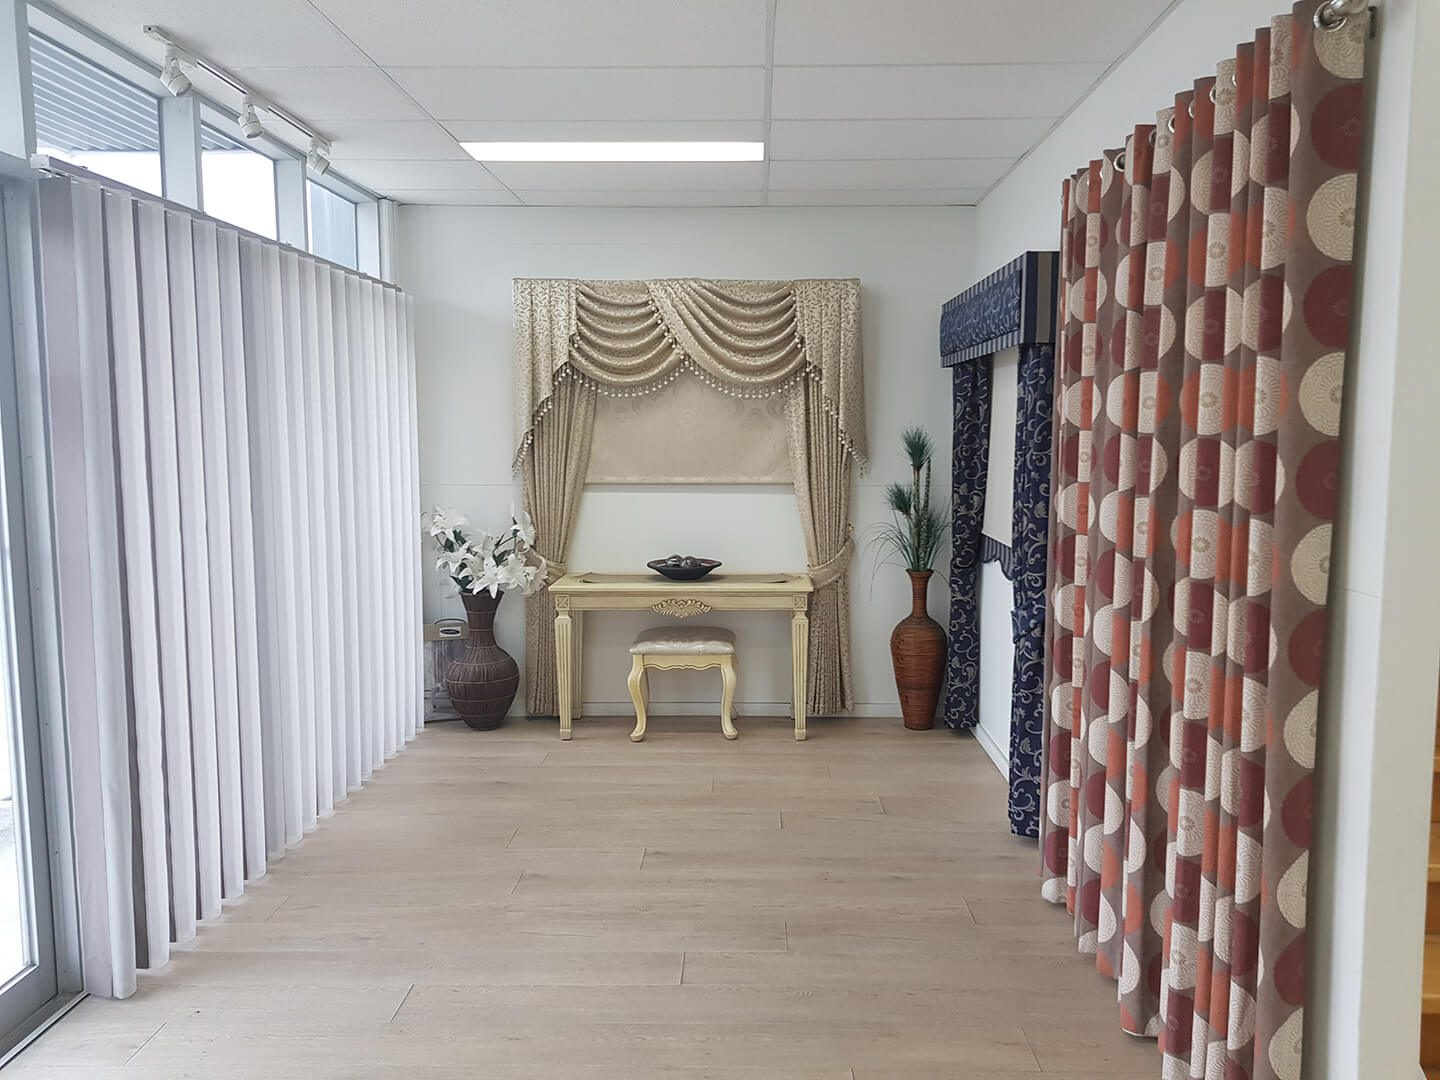 Pinch Pleat Drapes & Swags and Tails